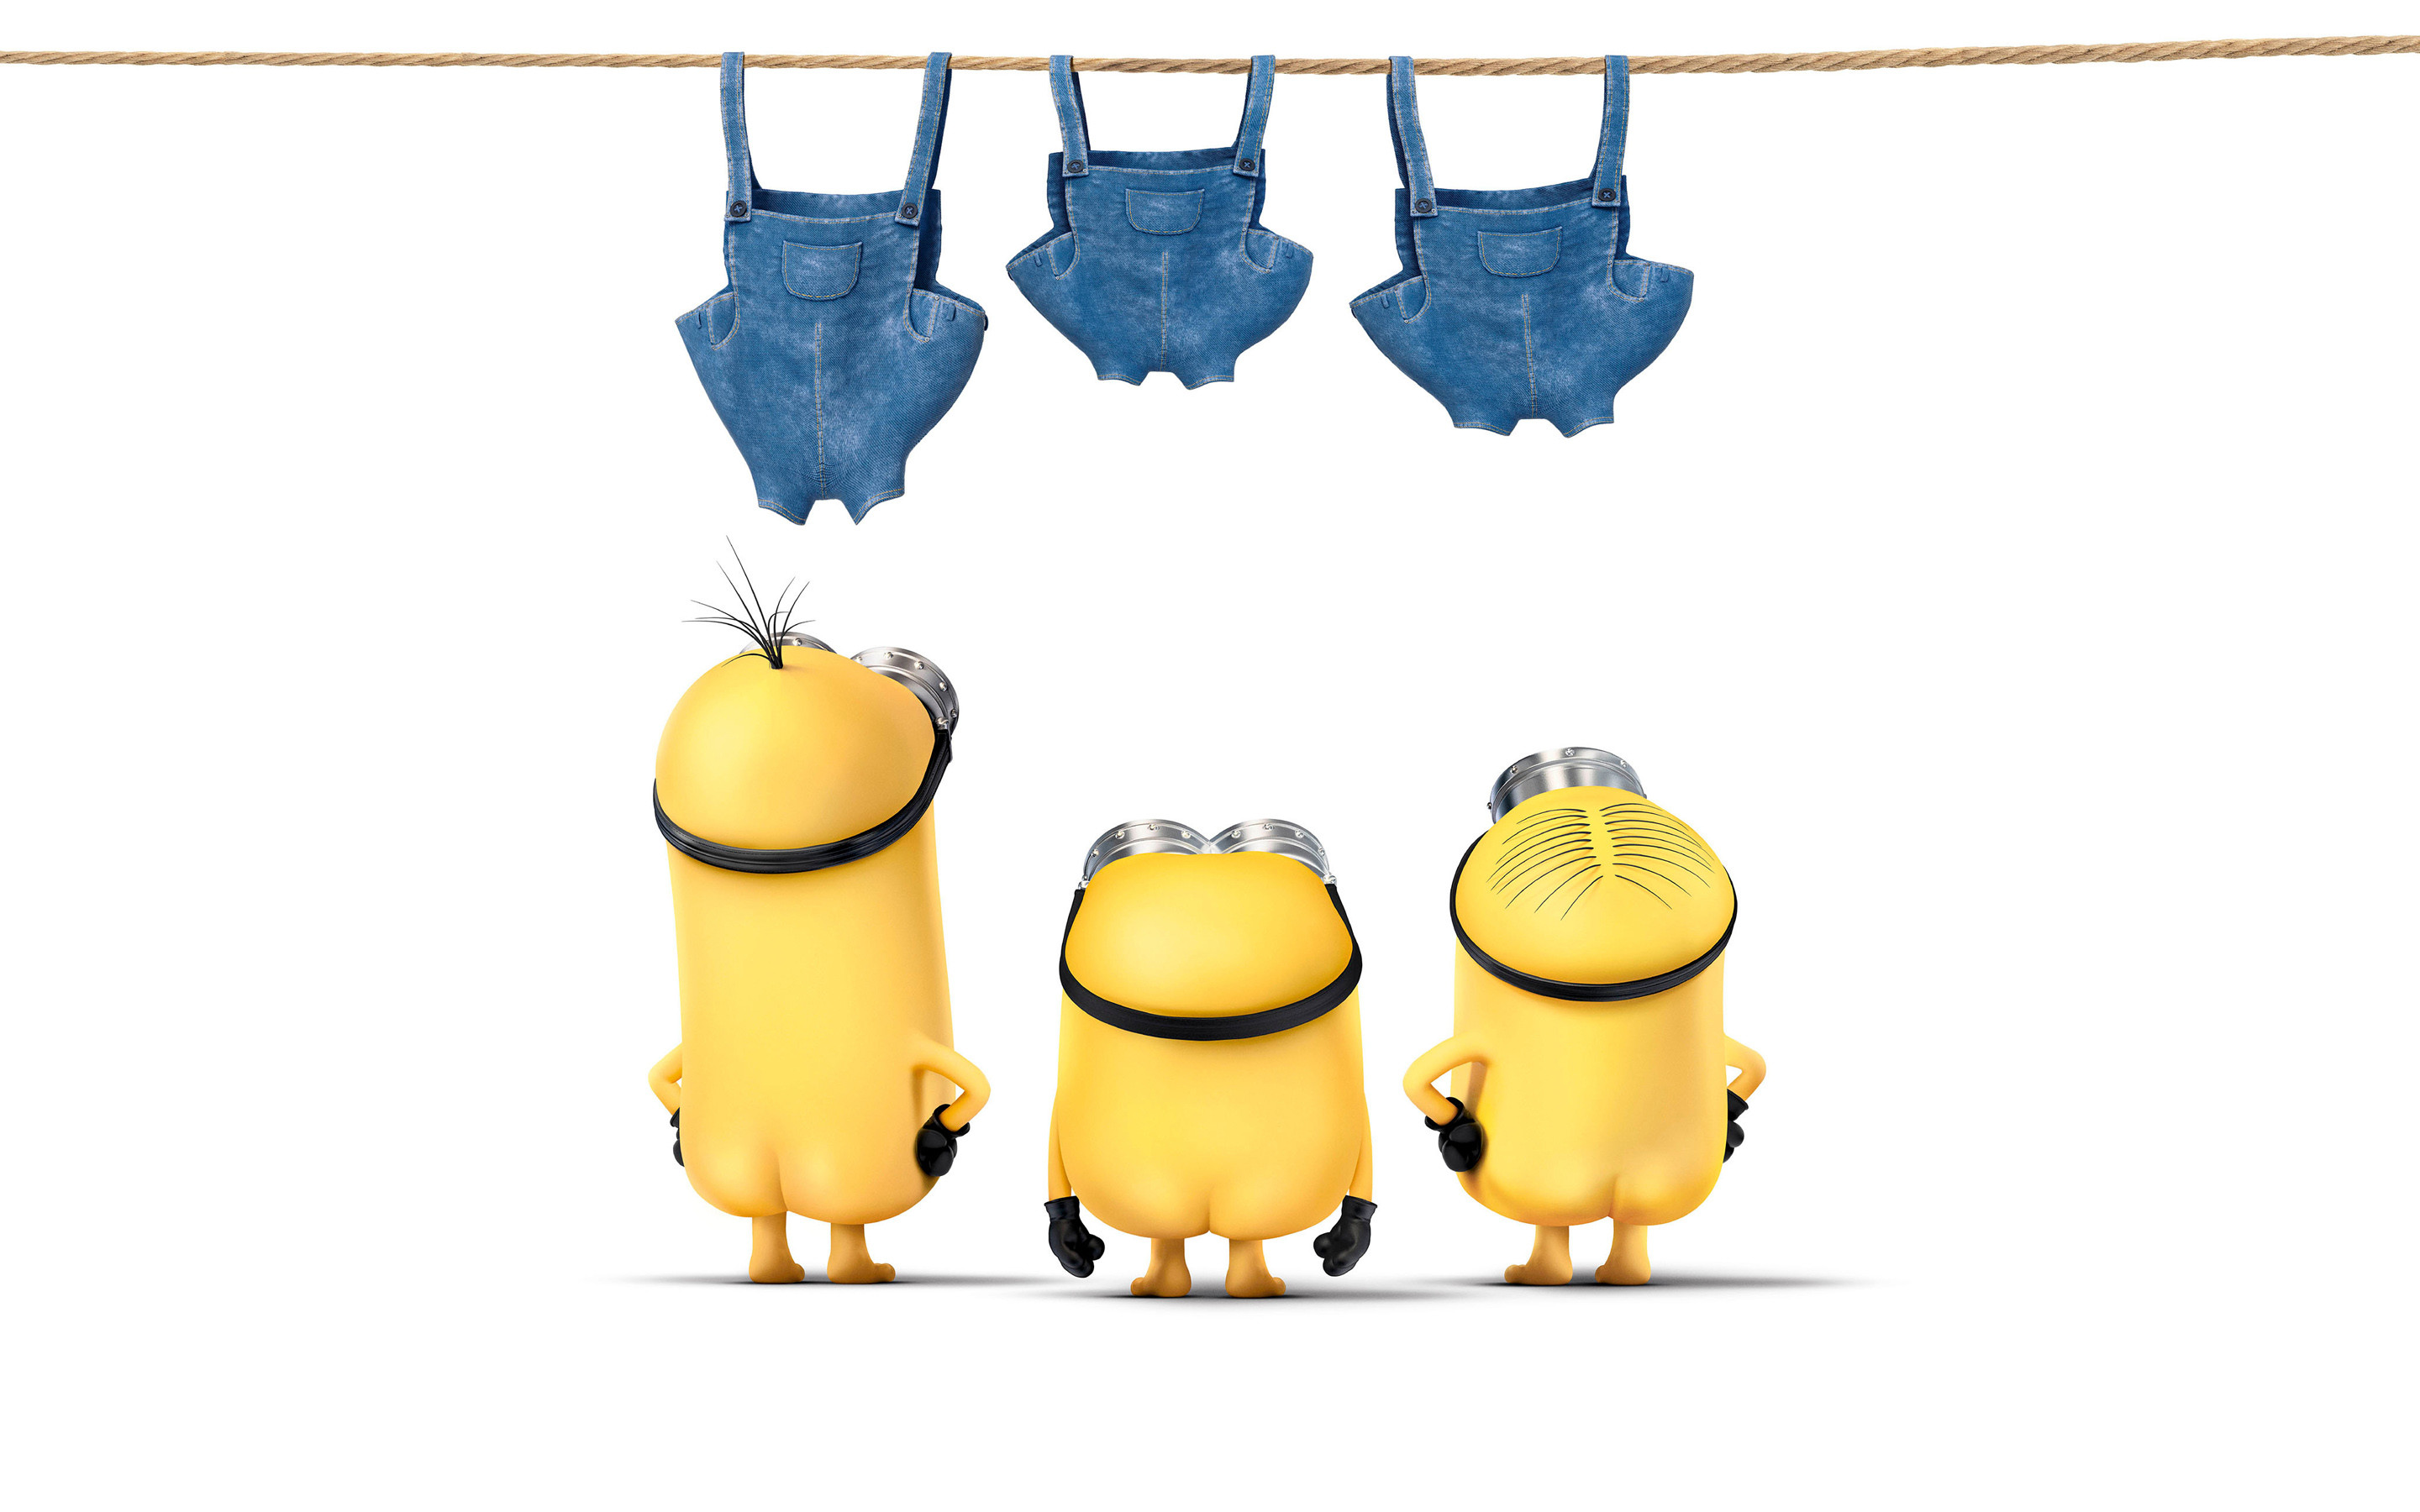 2880x1800 Funny Minions Movie Desktop Wallpaper